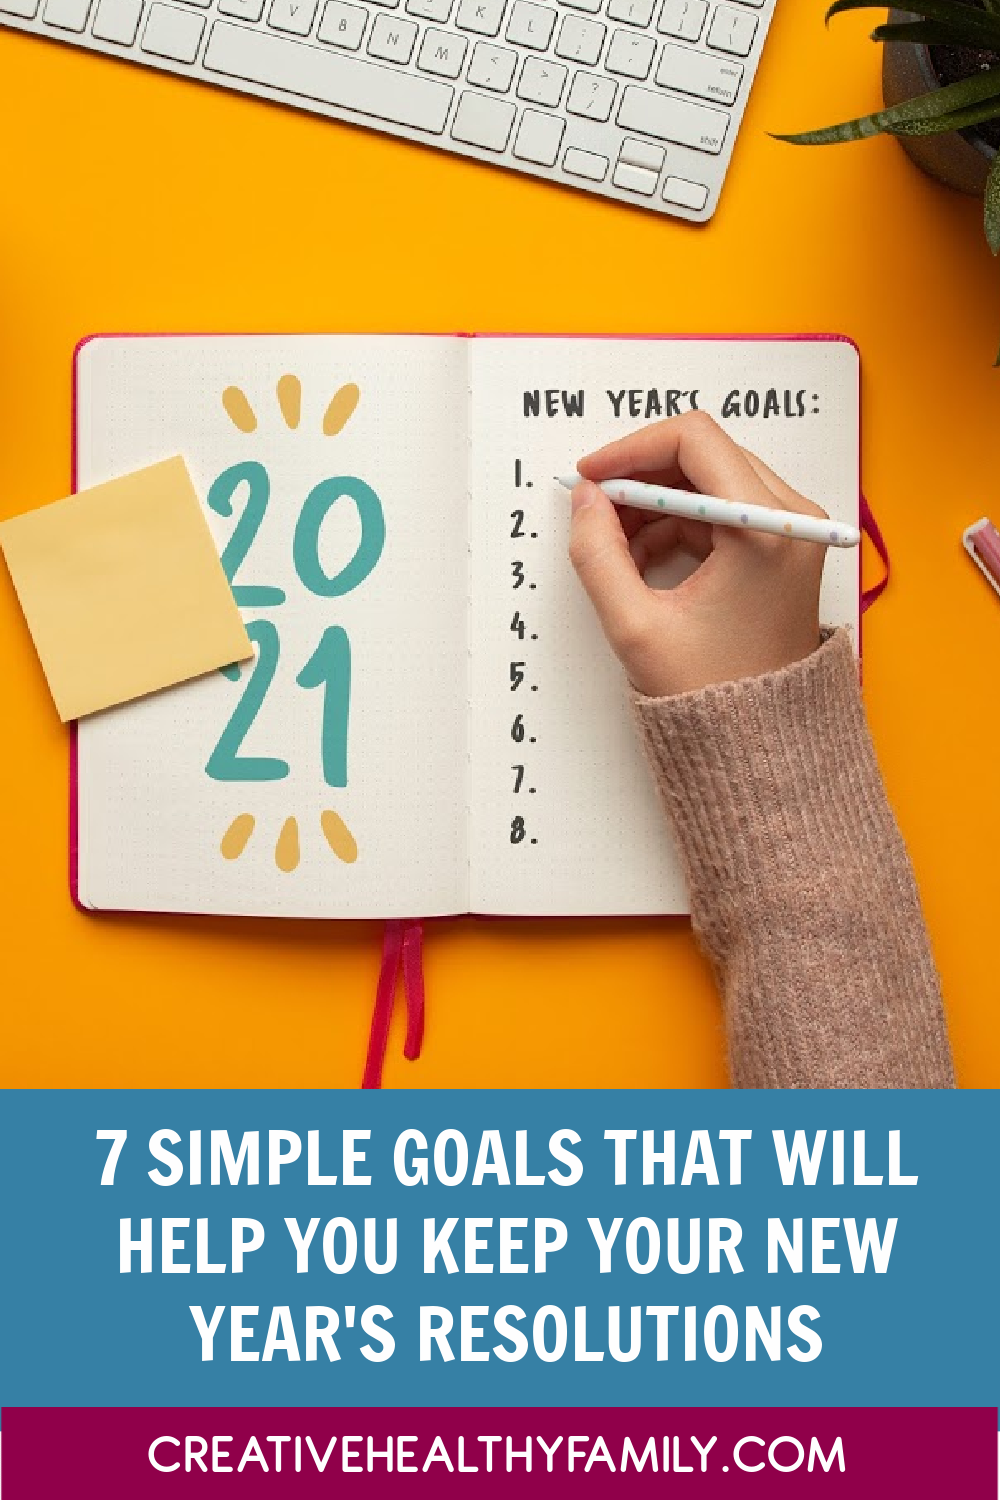 We all want to eat better and make smarter choices. If these are your New Year's resolutions, keep reading for 7 ideas that will keep you on track! Then just check out the ONE thing you need to do this year that will help you stick to ALL of your goals.